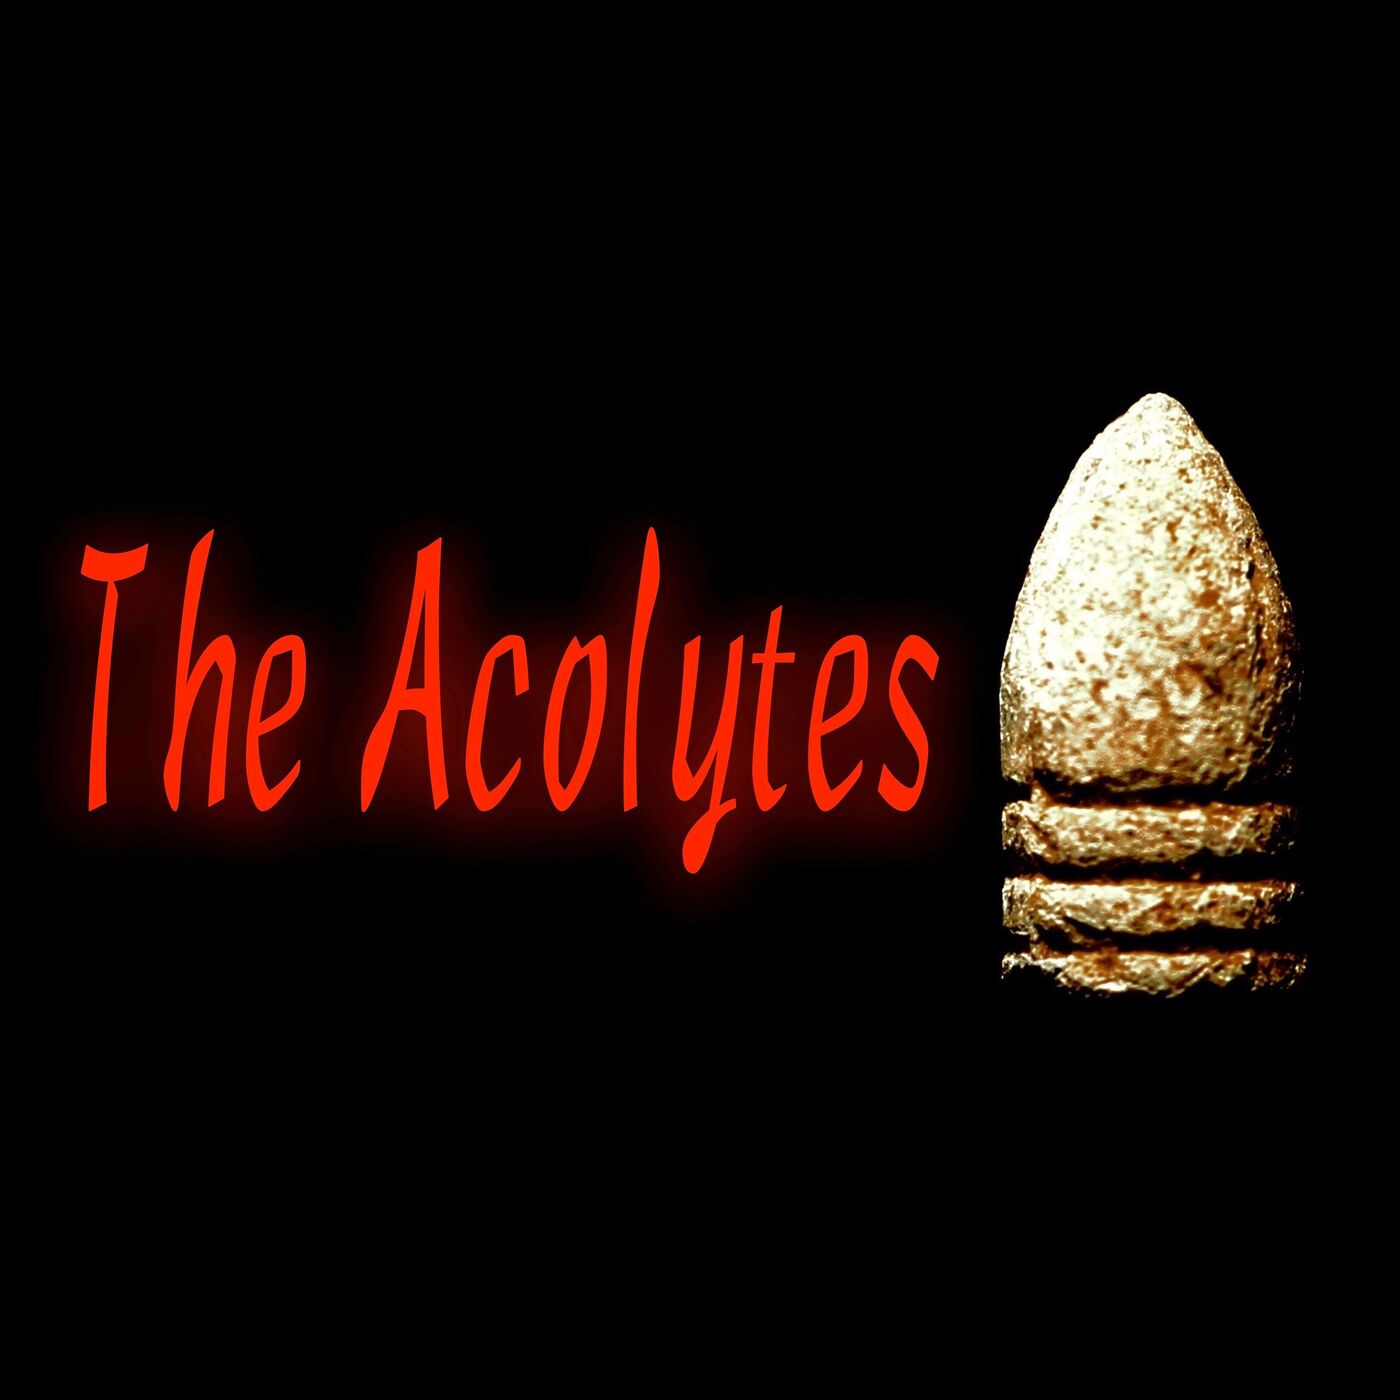 Chapter 5 The Acolytes